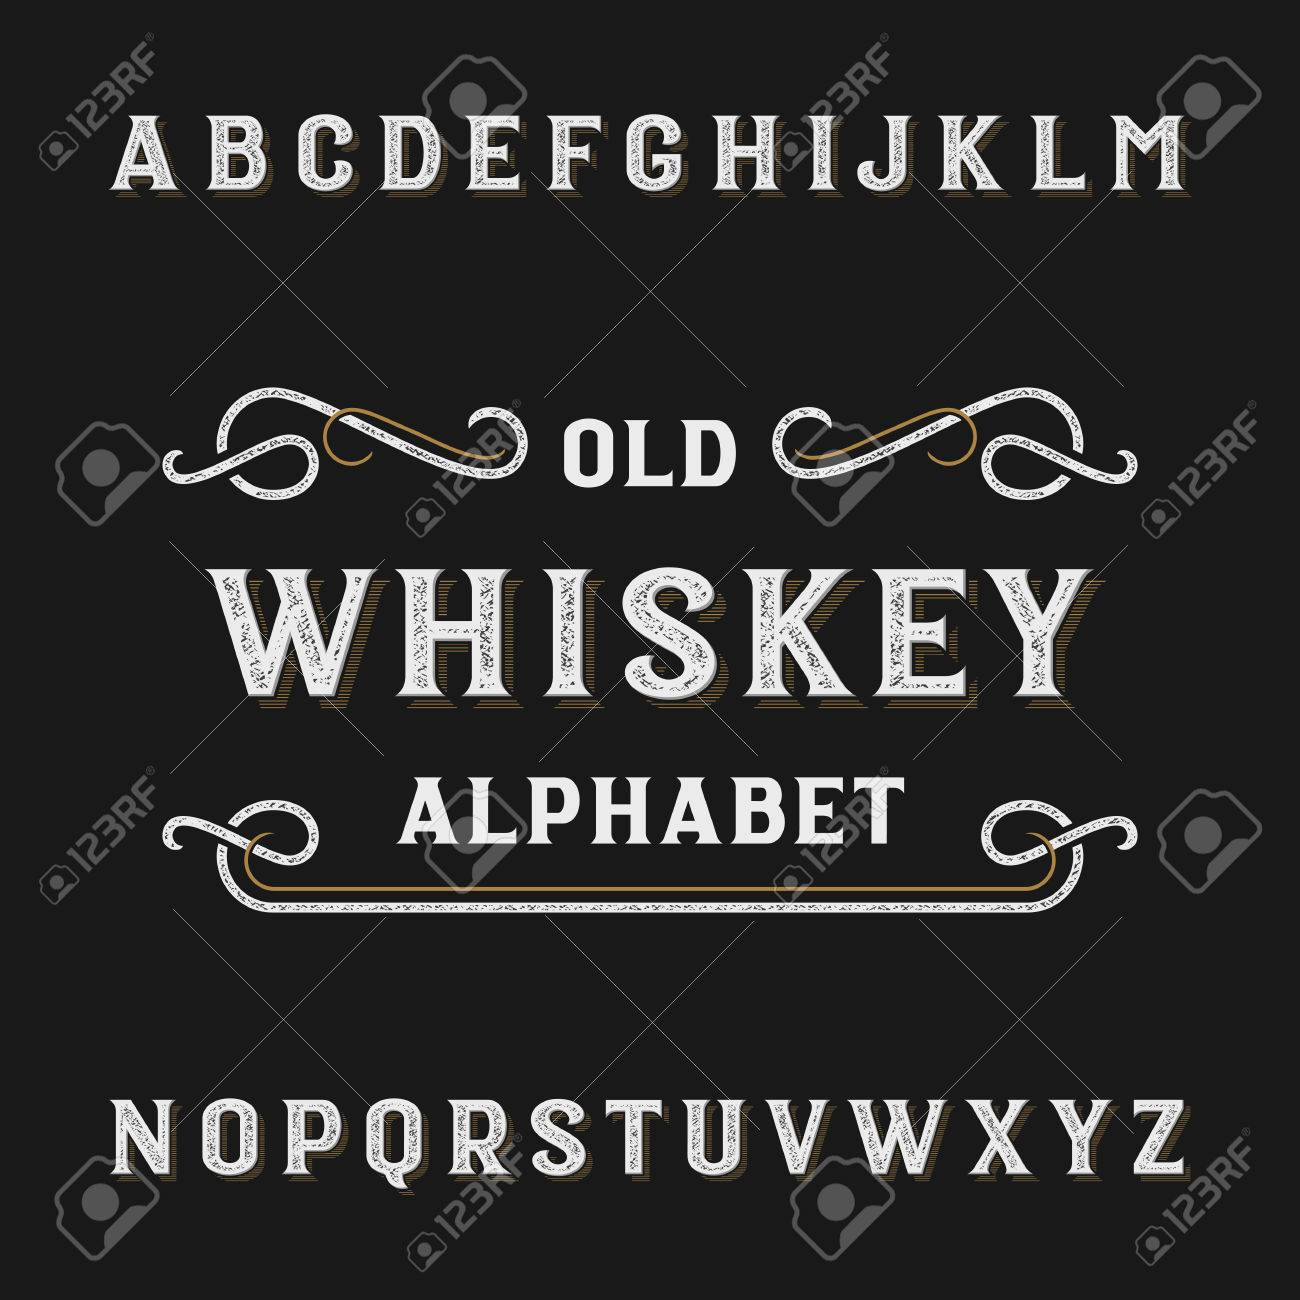 Old Whiskey Alphabet Vector Font Distressed Type Letters Typeface For Labels Headlines